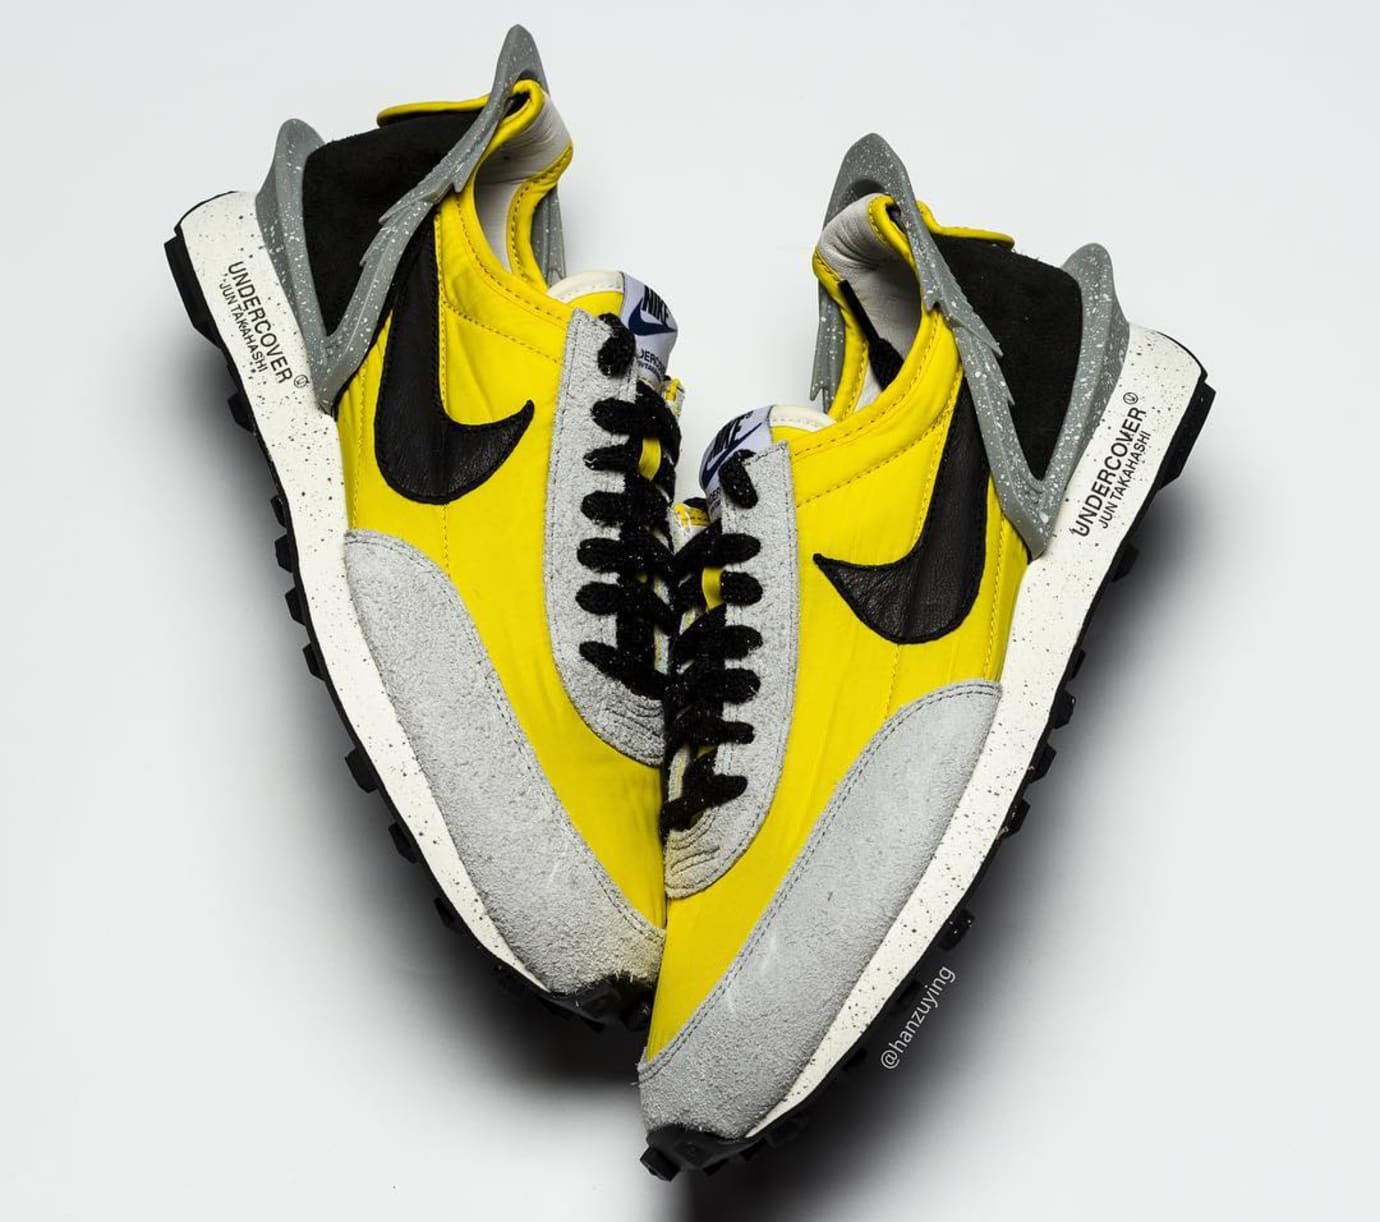 Undercover x Nike Daybreak Yellow/Grey BV4594-700 Lateral